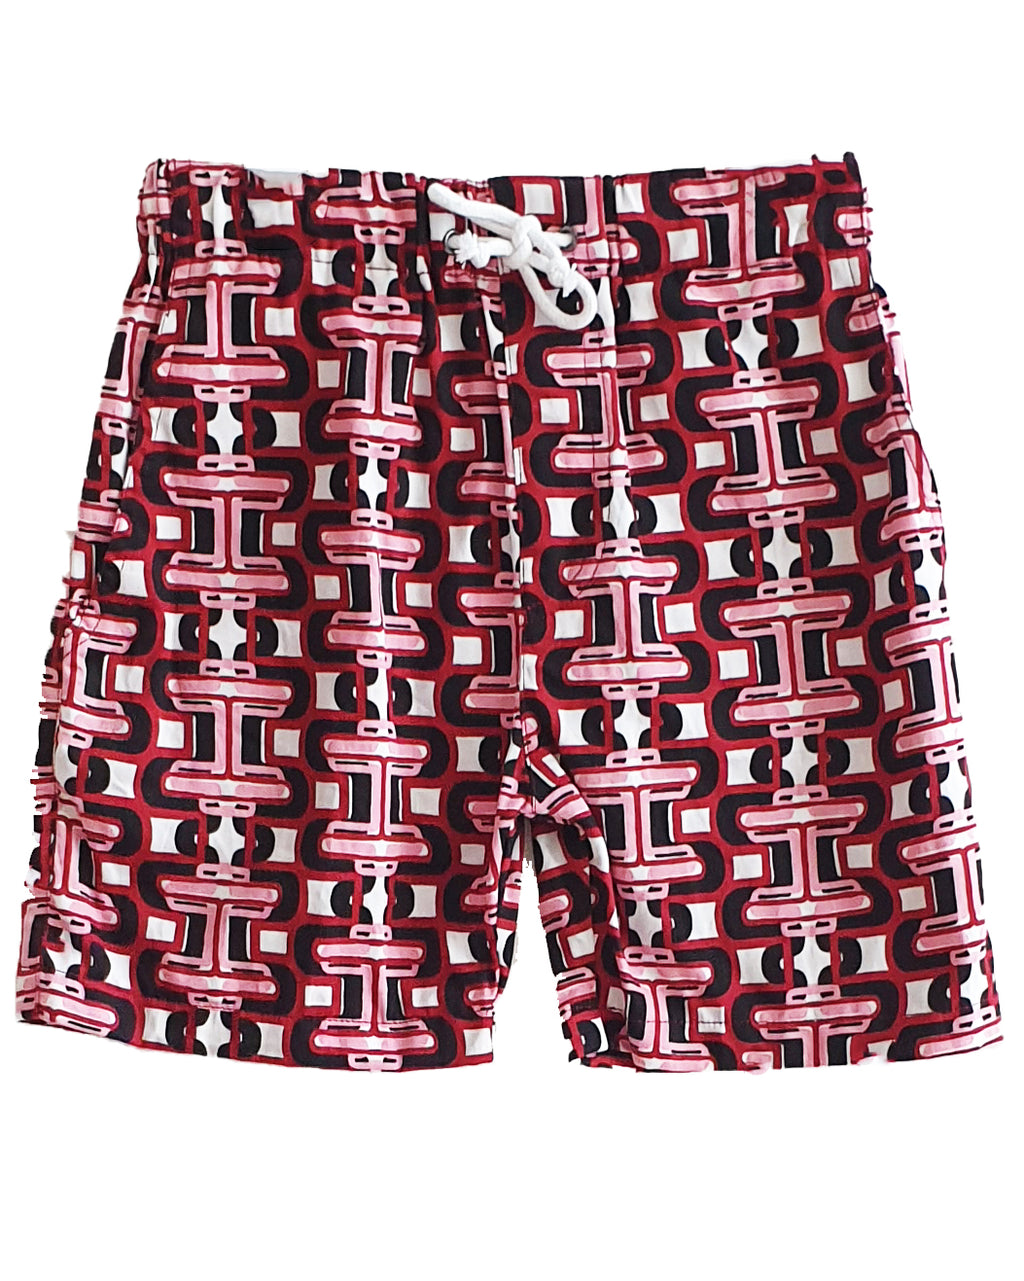 LL Cool Links Red Shorts - Roses & Rhinos